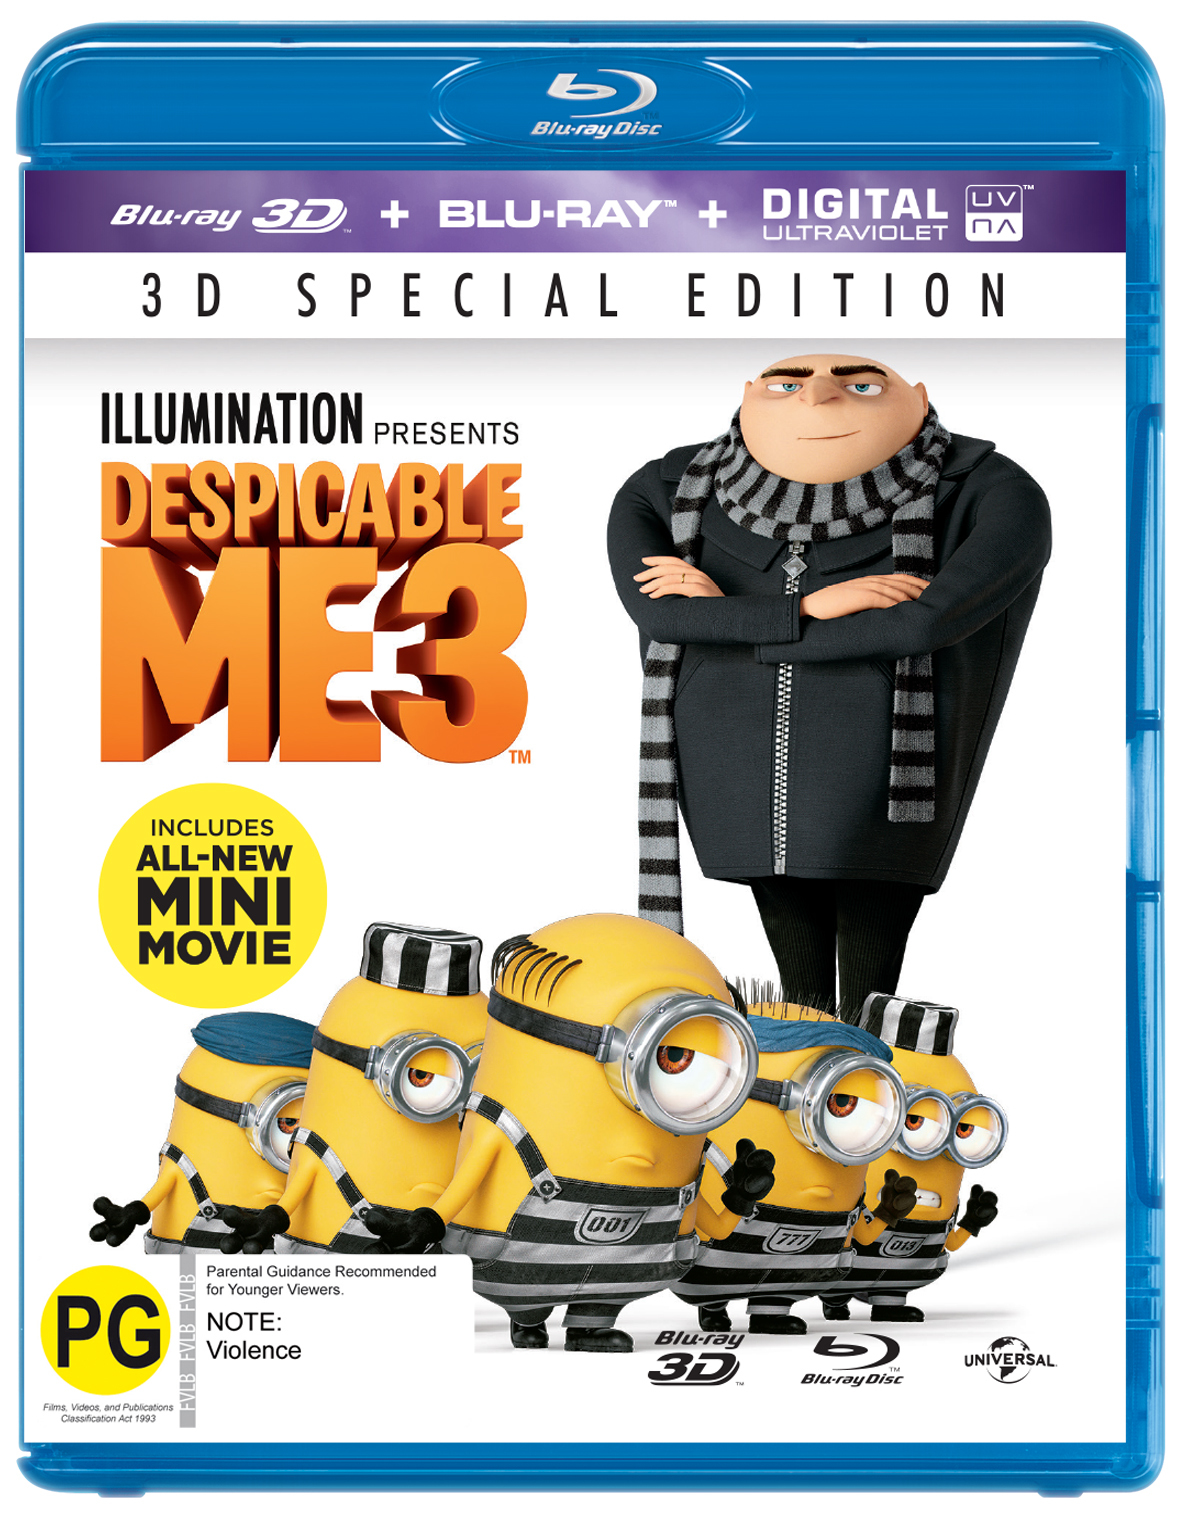 Despicable Me 3 on Blu-ray, 3D Blu-ray image